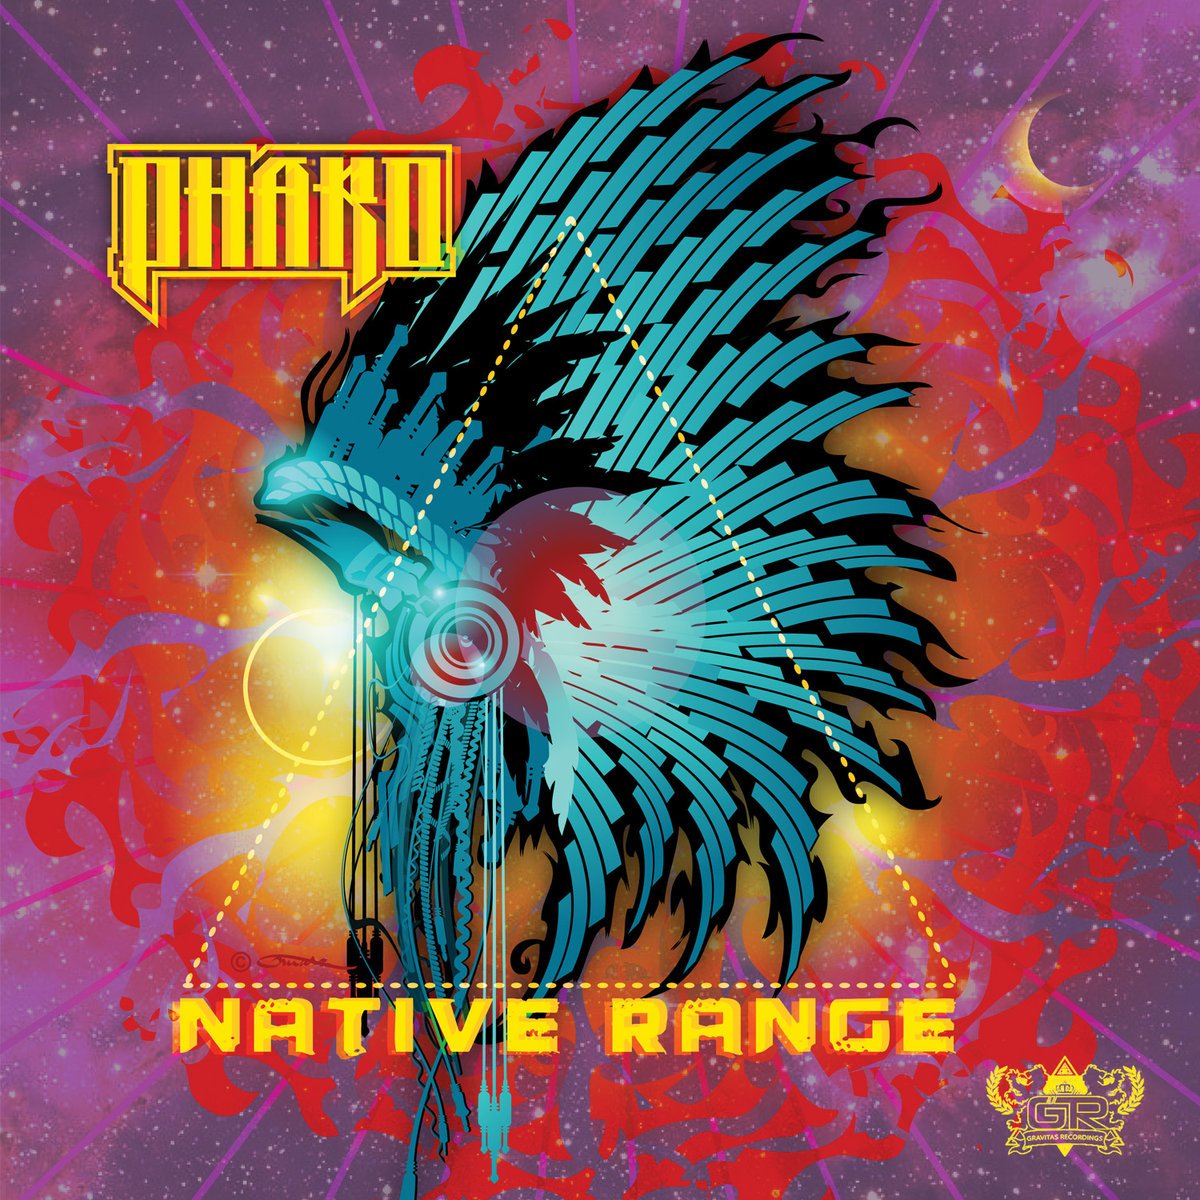 Pharo - Pacman Grind @ 'Native Range' album (austin, bass)